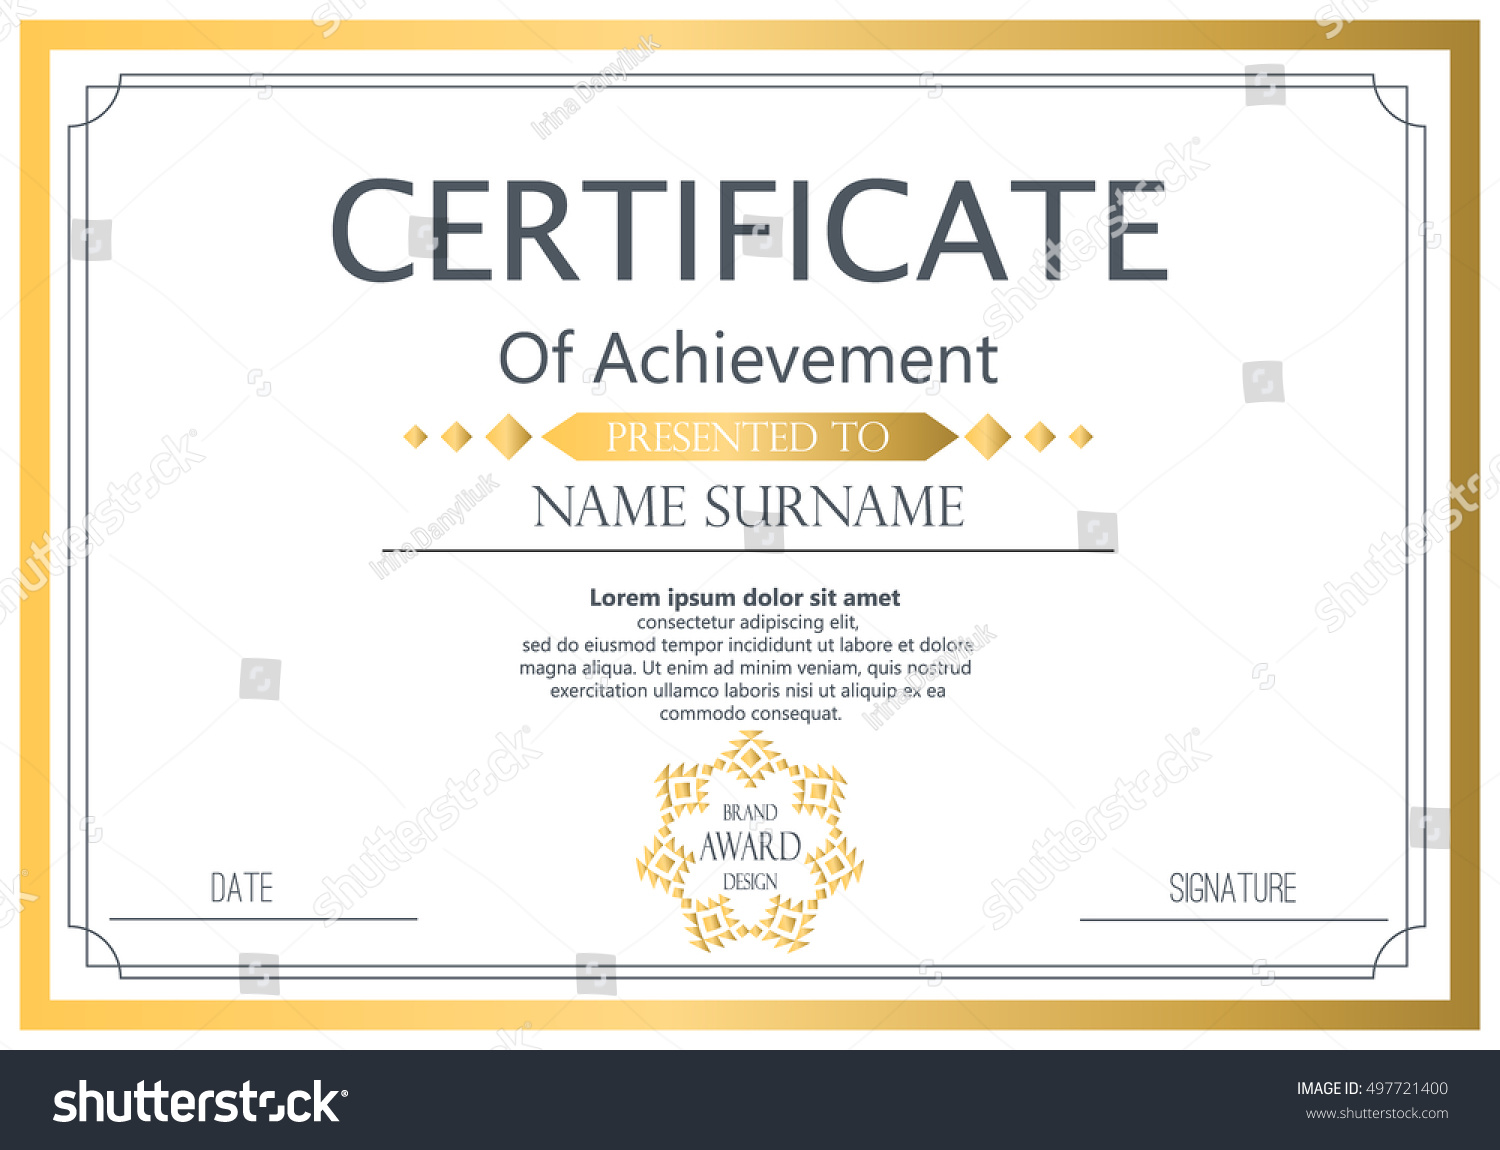 Vector certificate template vector award graduation stock vector vector certificate template vector award graduation certificate achievement success template border business paper coupon xflitez Gallery